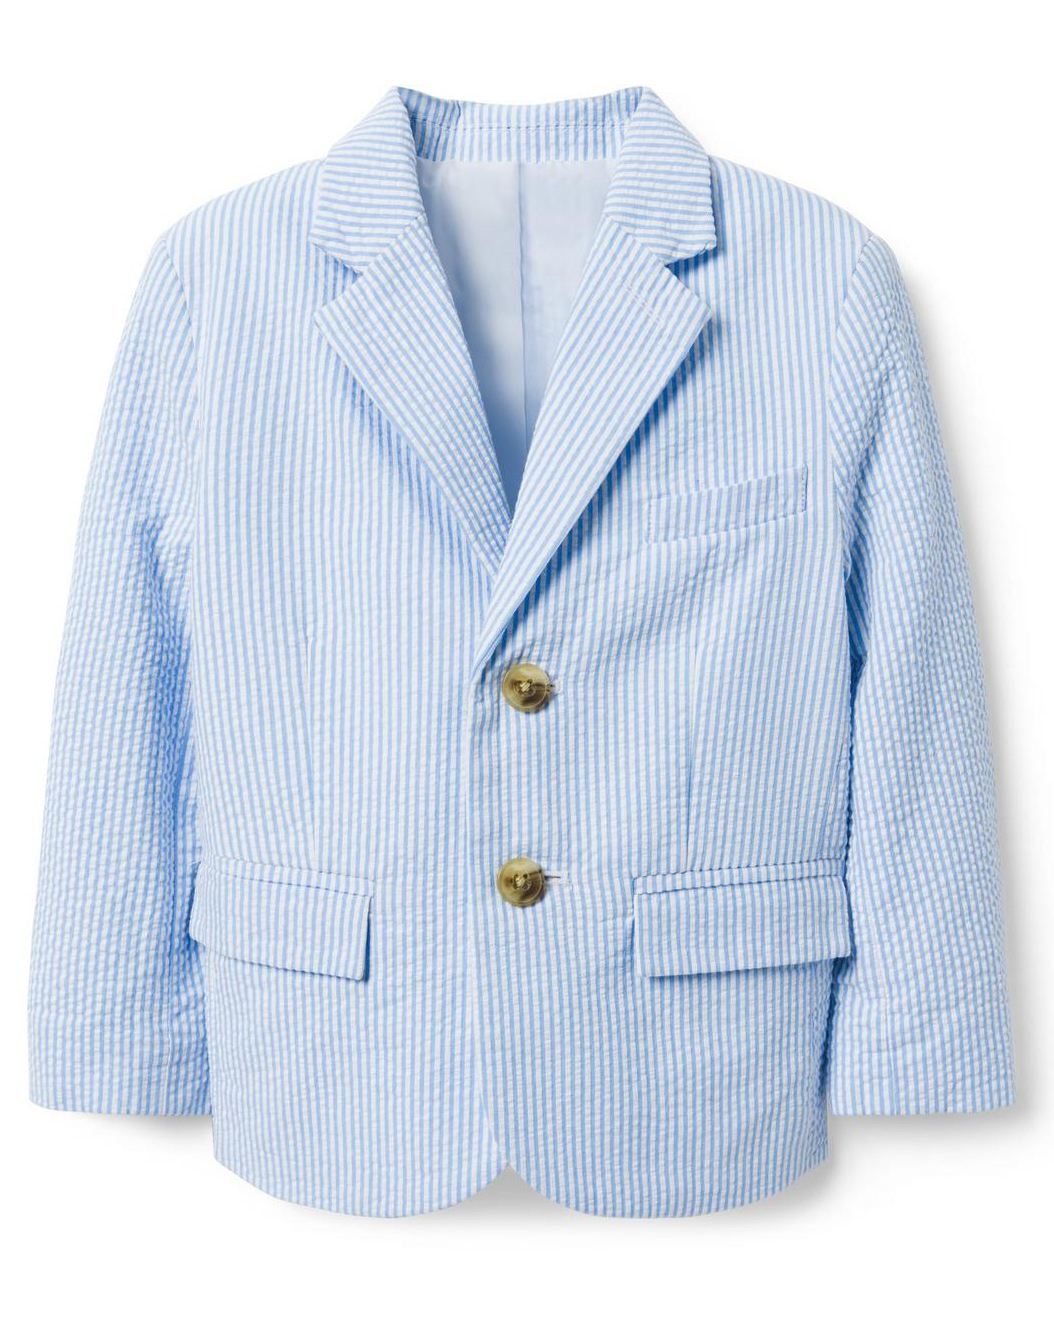 Janie and Jack Seersucker Blazer